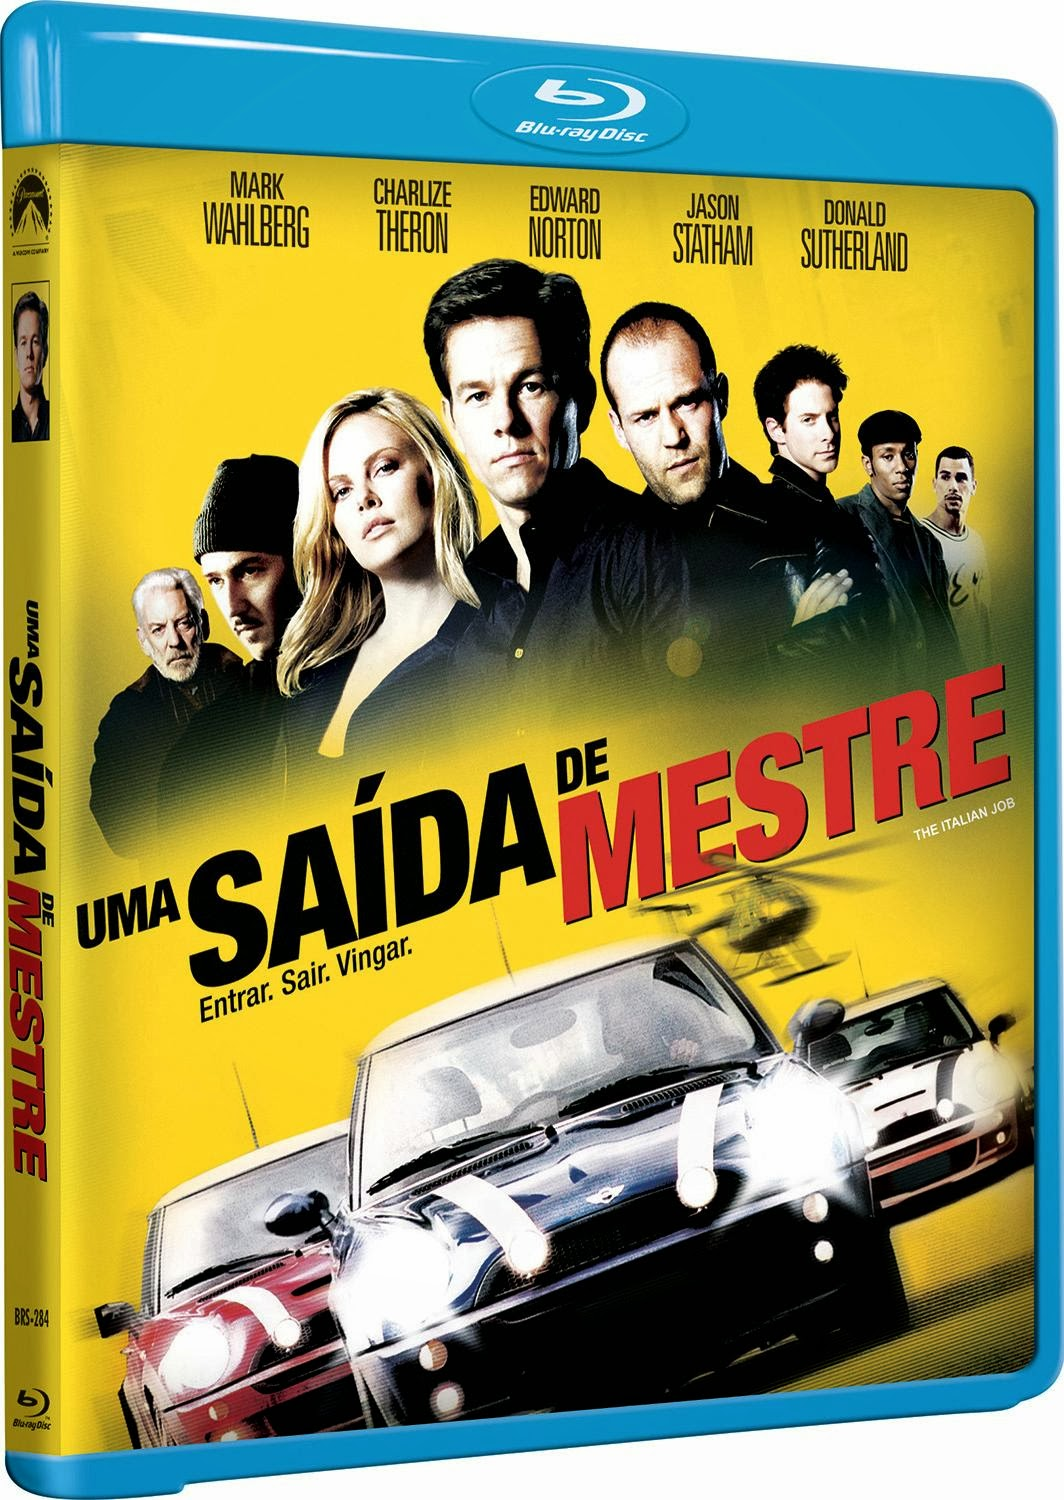 foto 1457 Download Uma Saída de Mestre (2003) BDRIP BLURAY 720P TORRENT DUBLADO